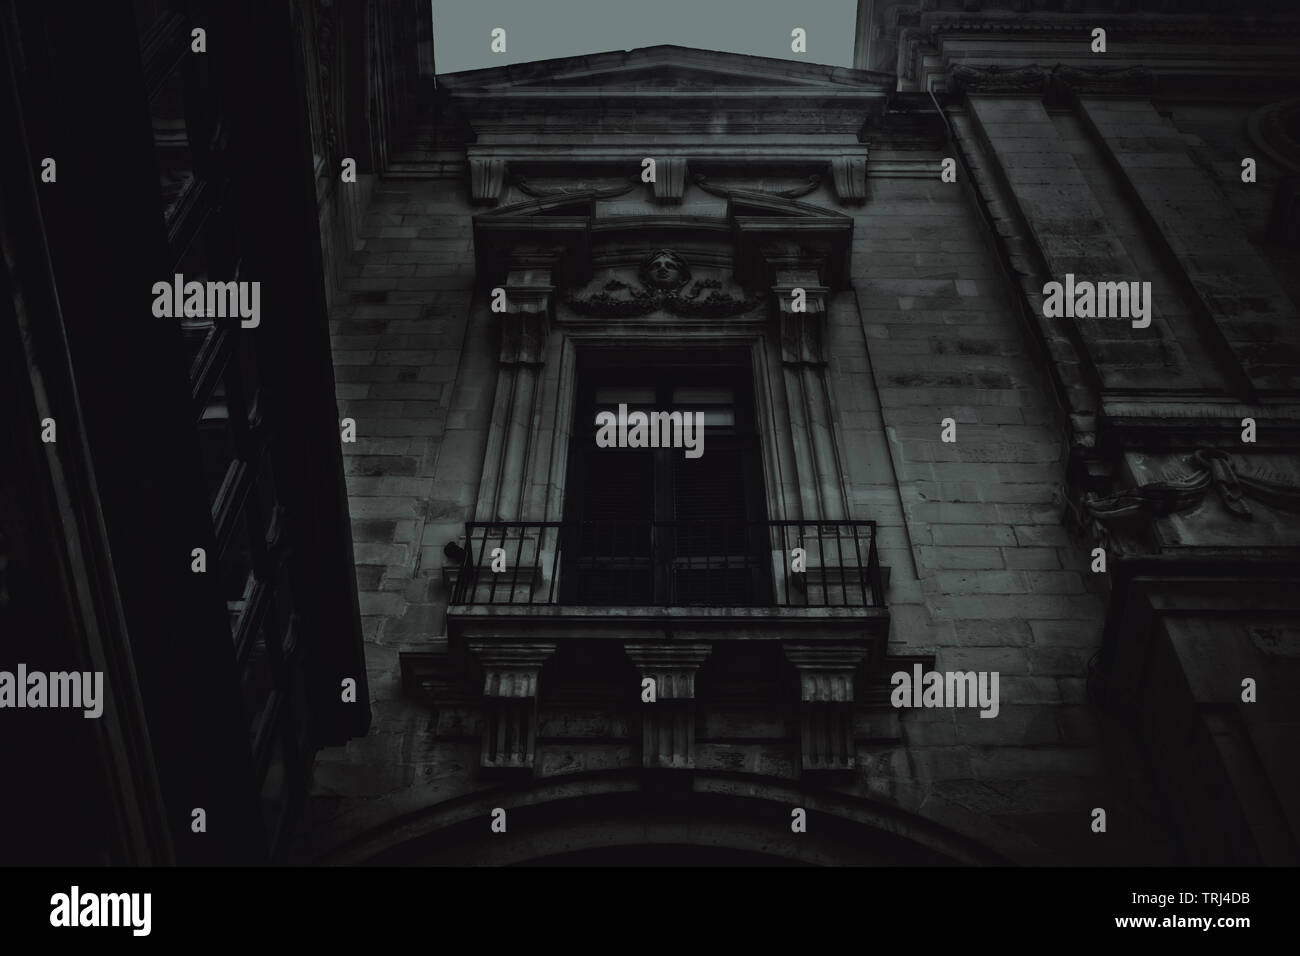 Spooky Buildings at Night in Malta. A vintage building in Valletta, Malta in black and white at night. - Stock Image